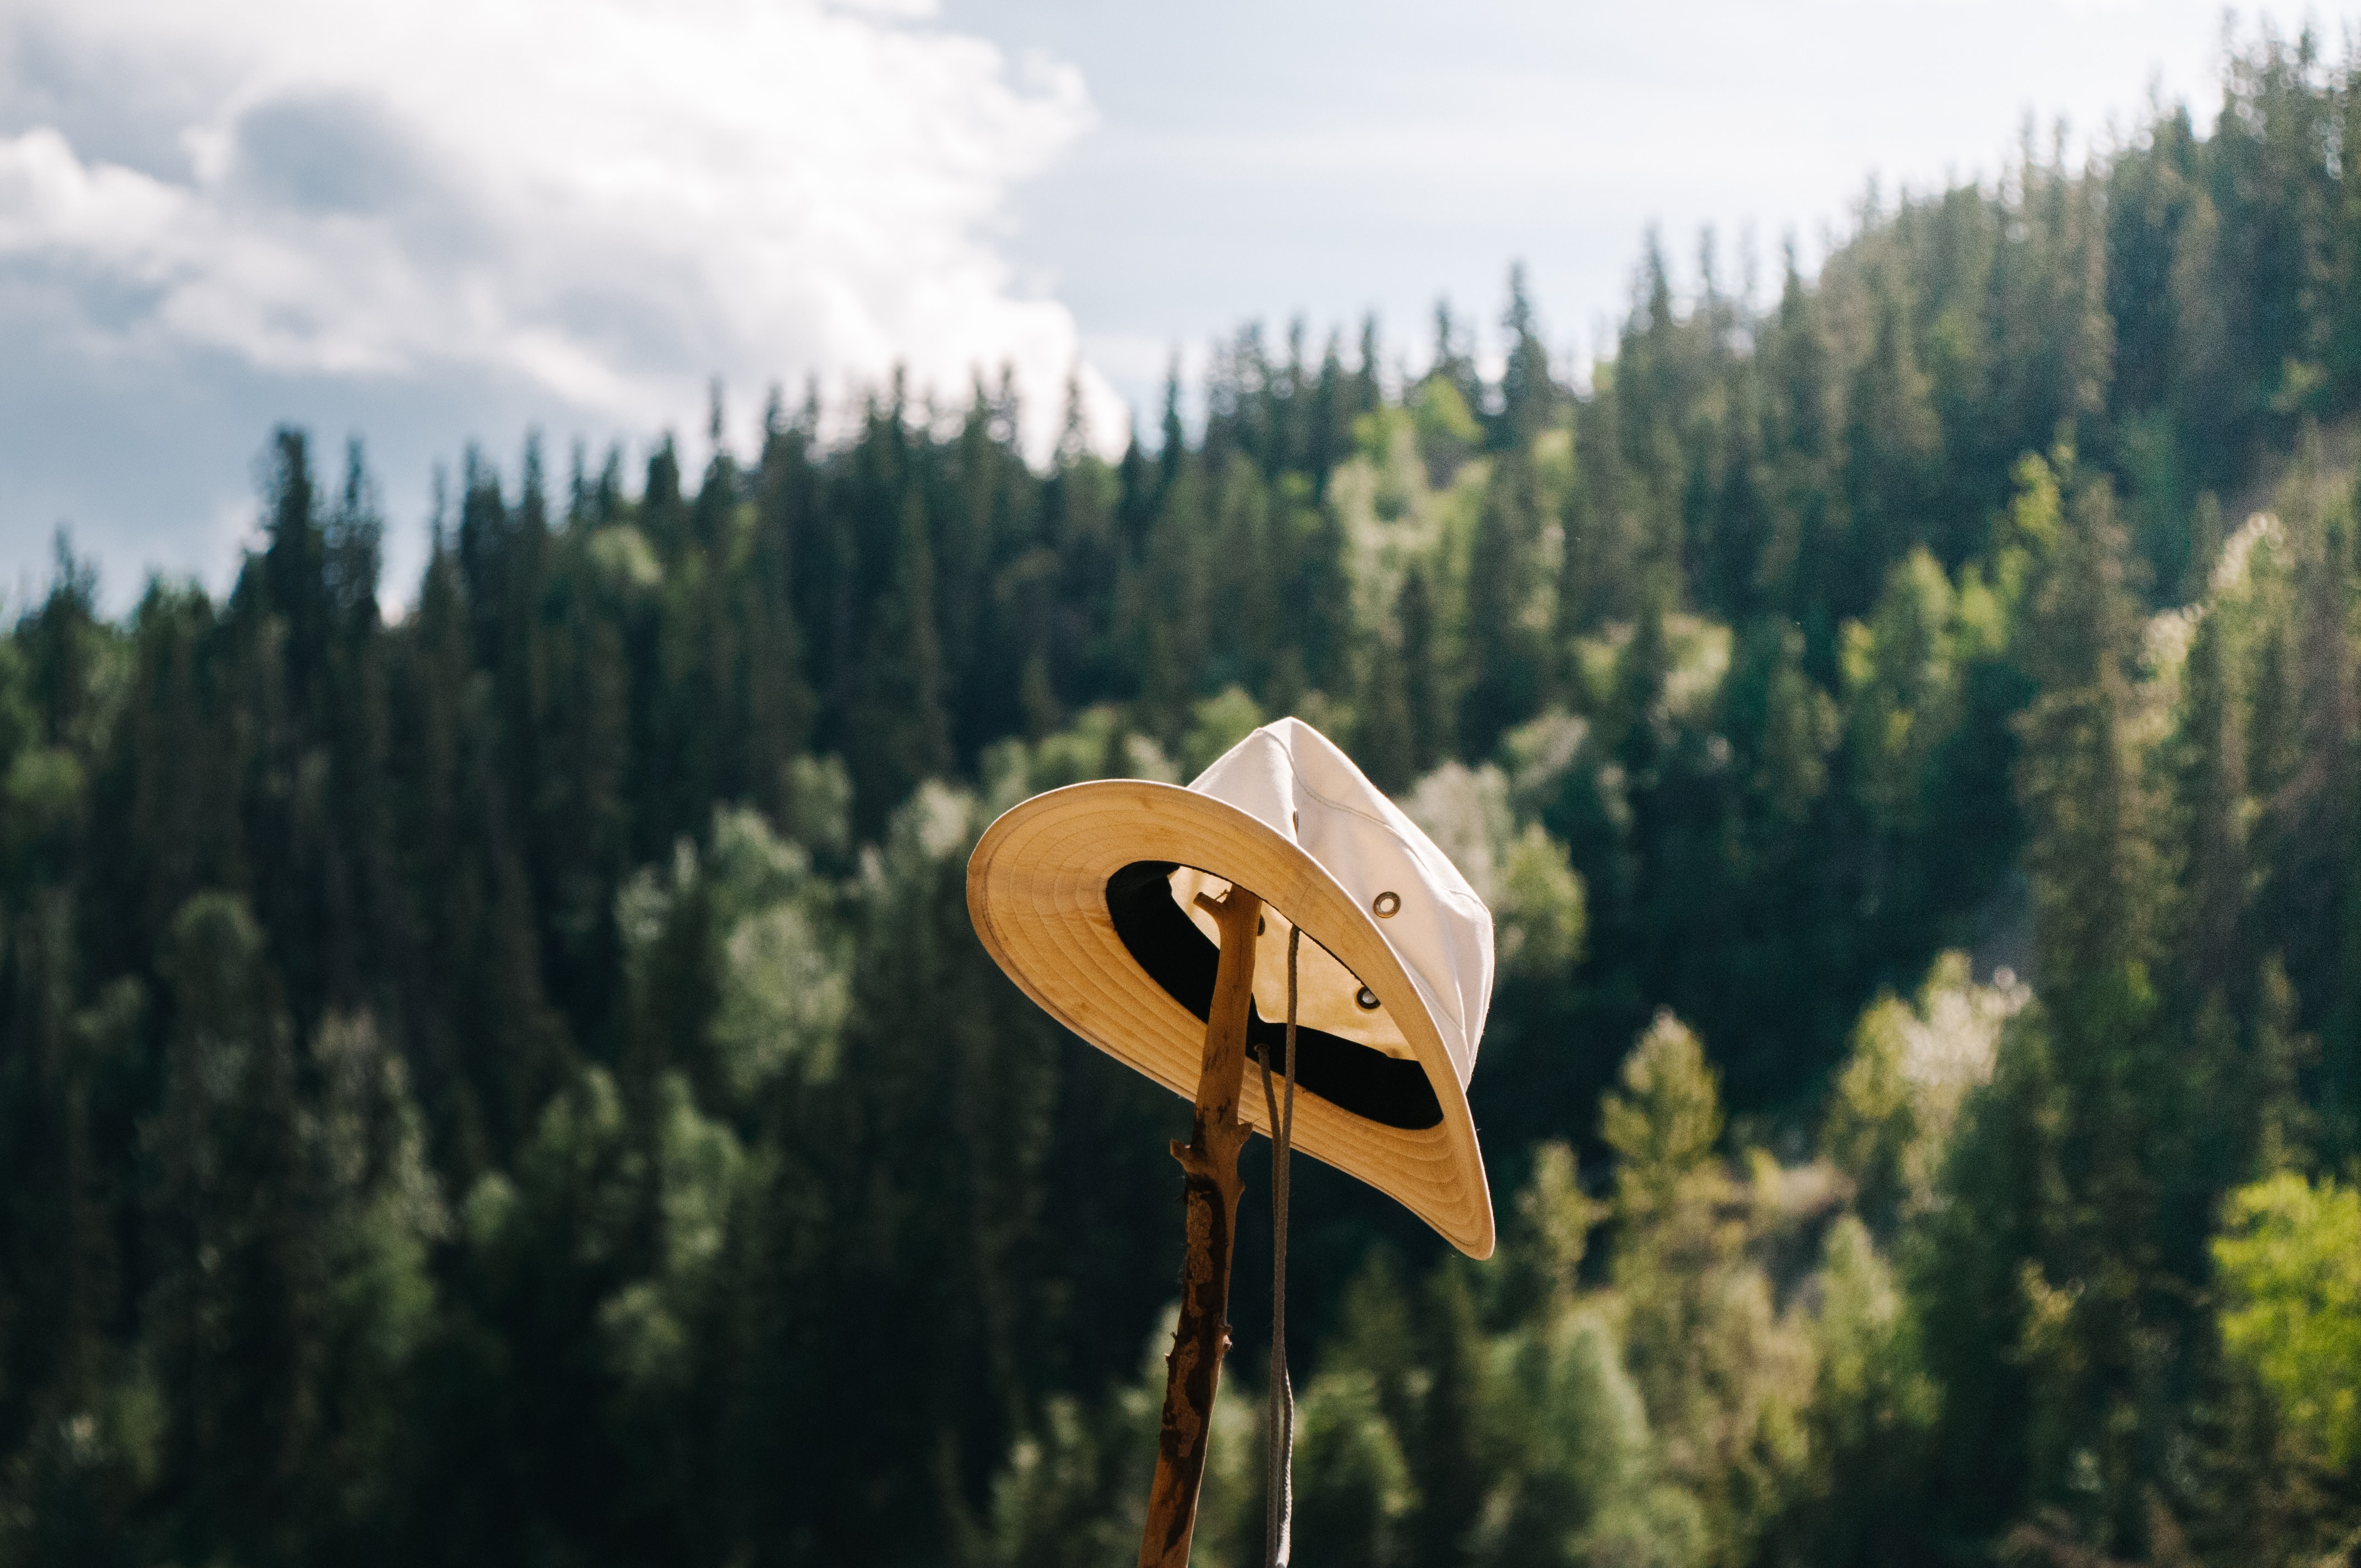 brown hat on top of brown wooden stick at daytime